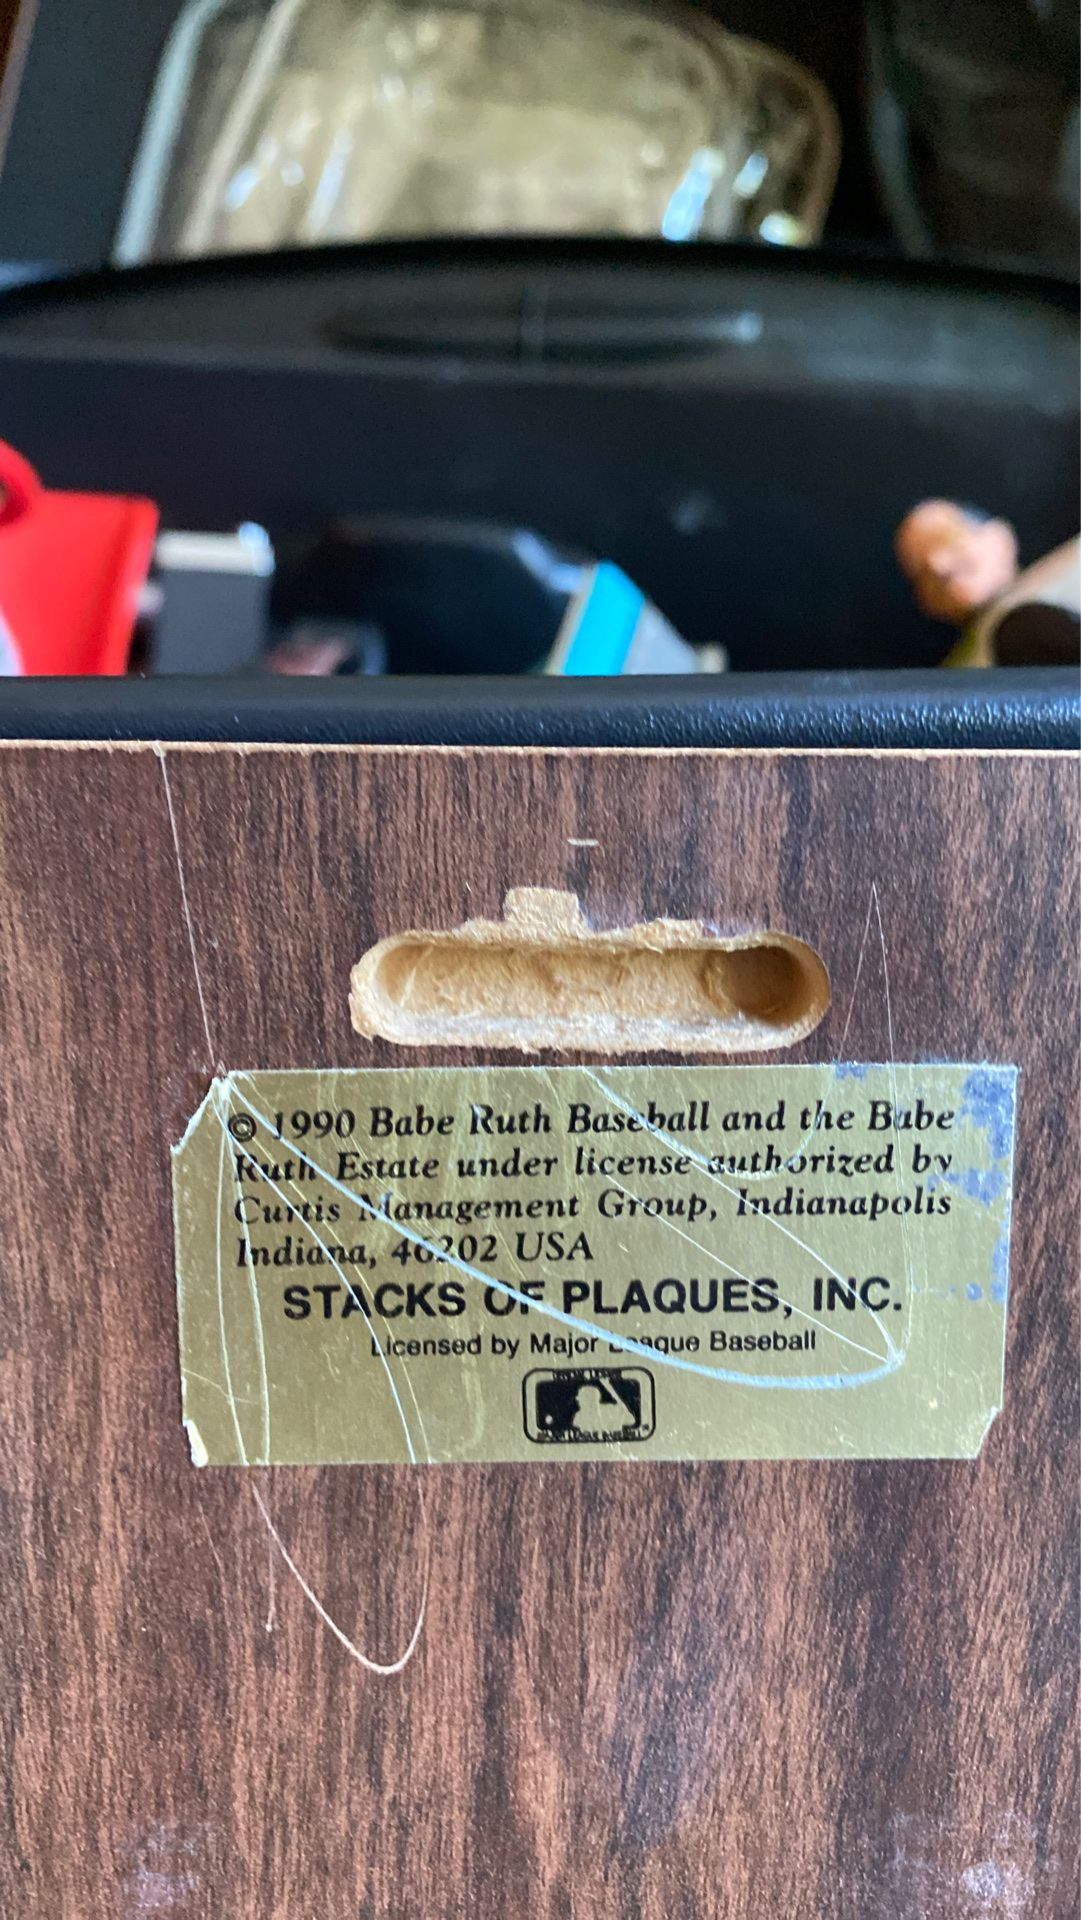 Babe Ruth plaque